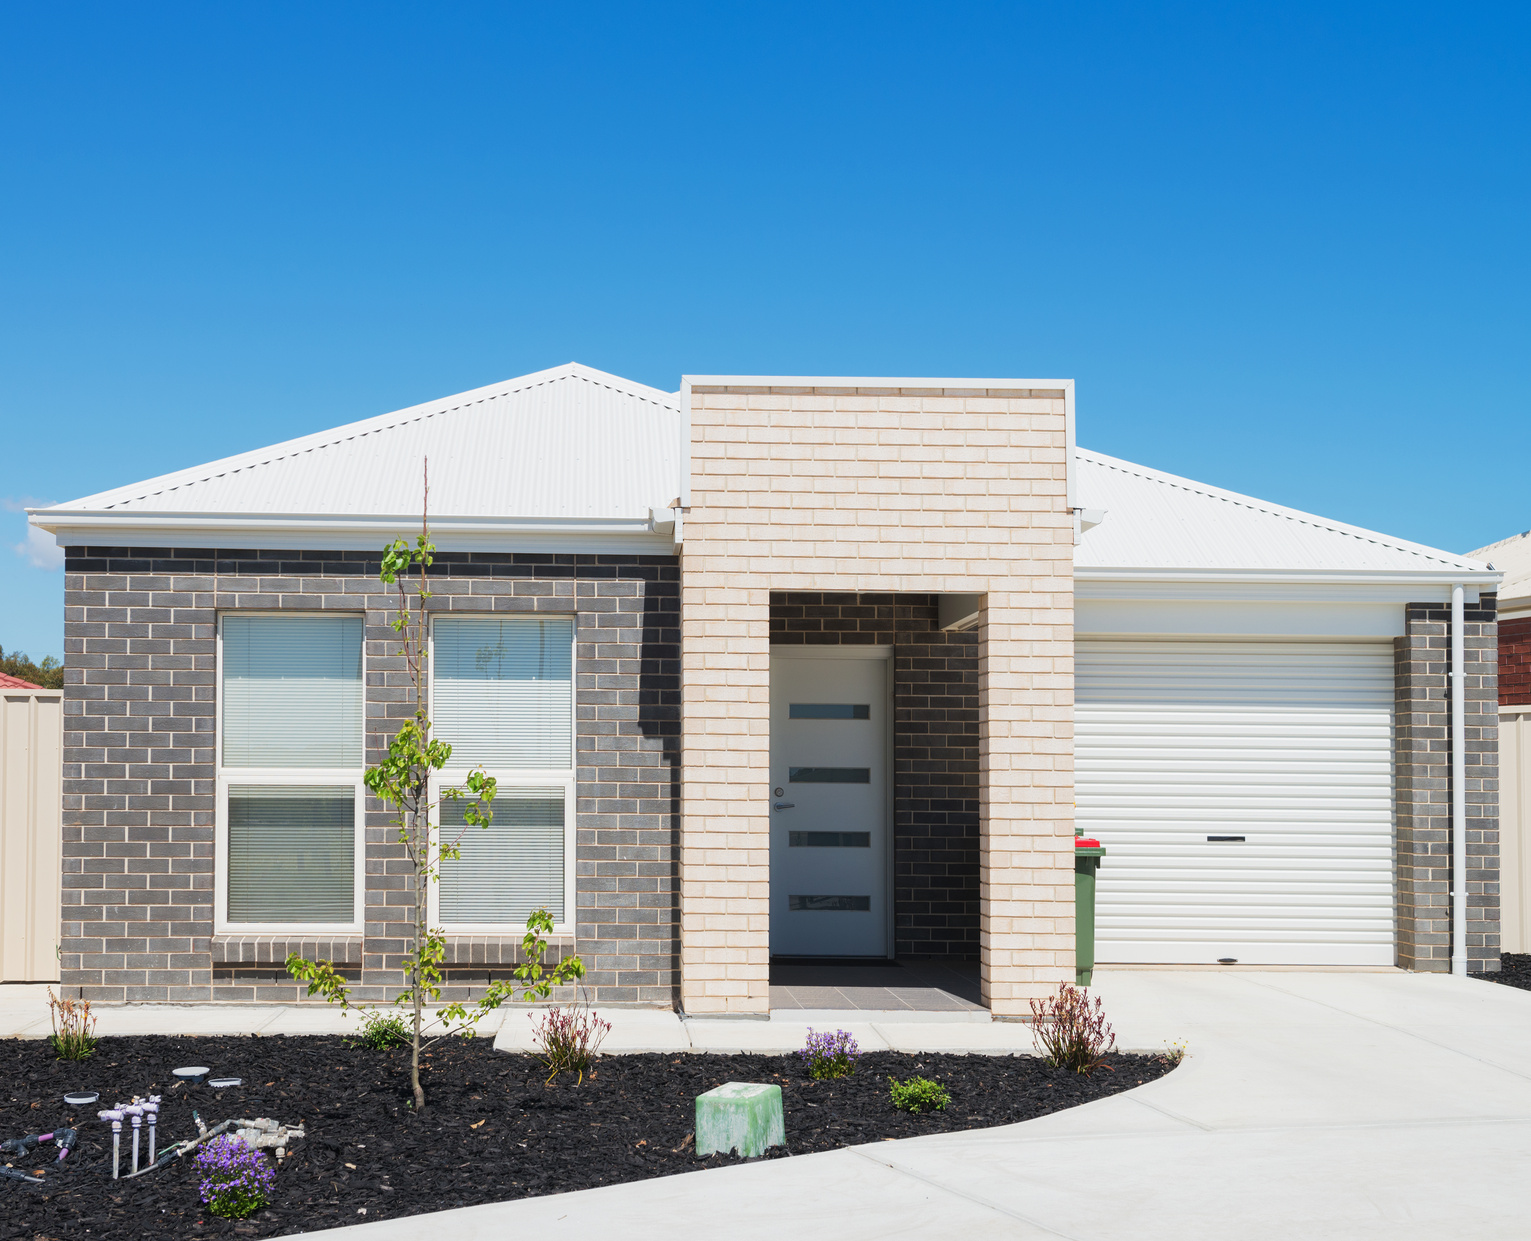 Install The Security Roller Shutters In Your Home To Ensure